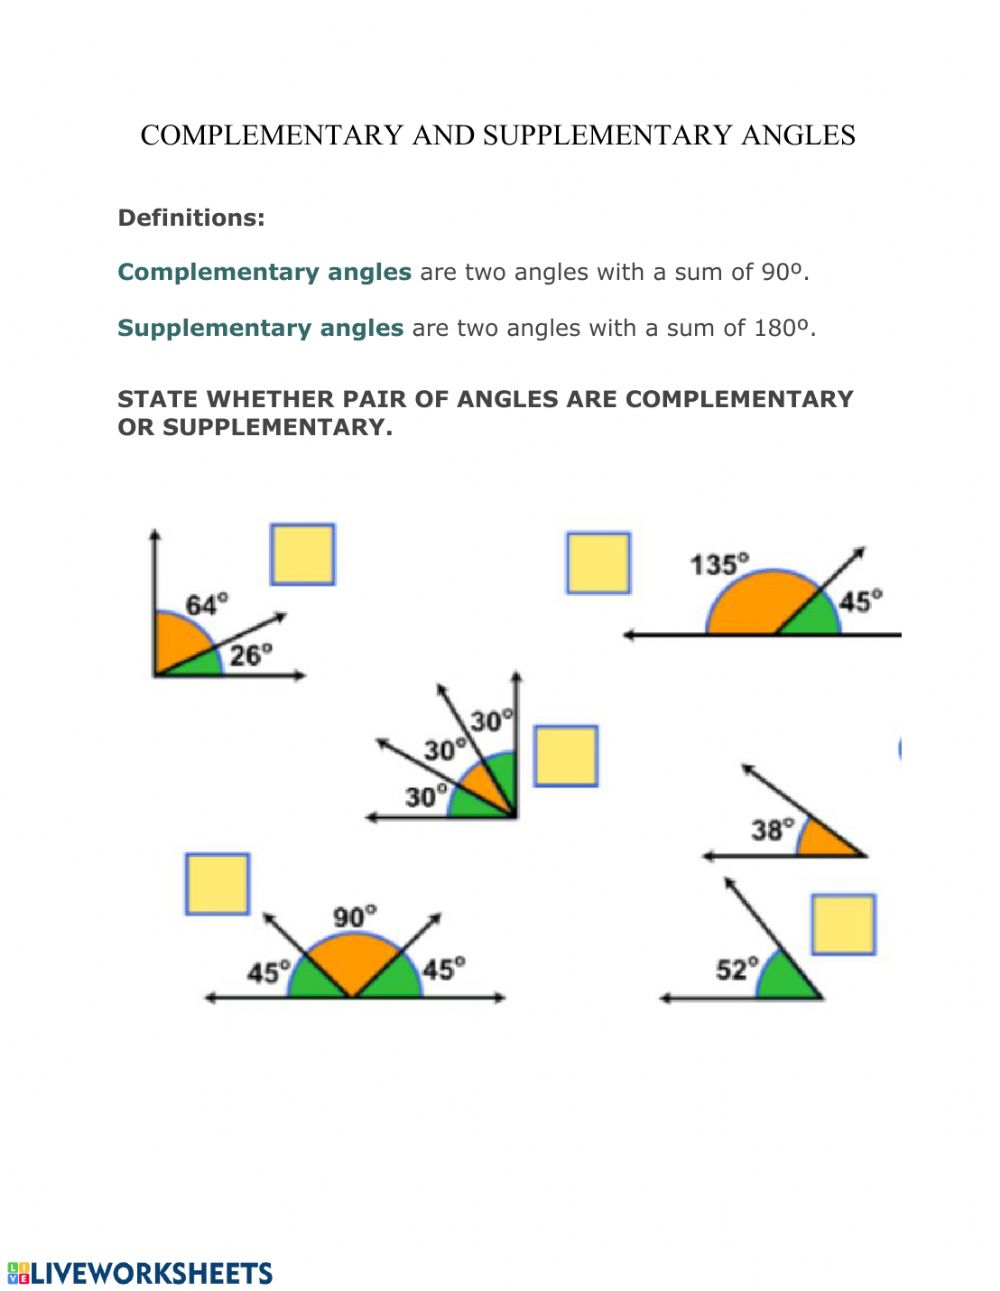 Complementary And Supplementary Angles Worksheet Pdf With Answers